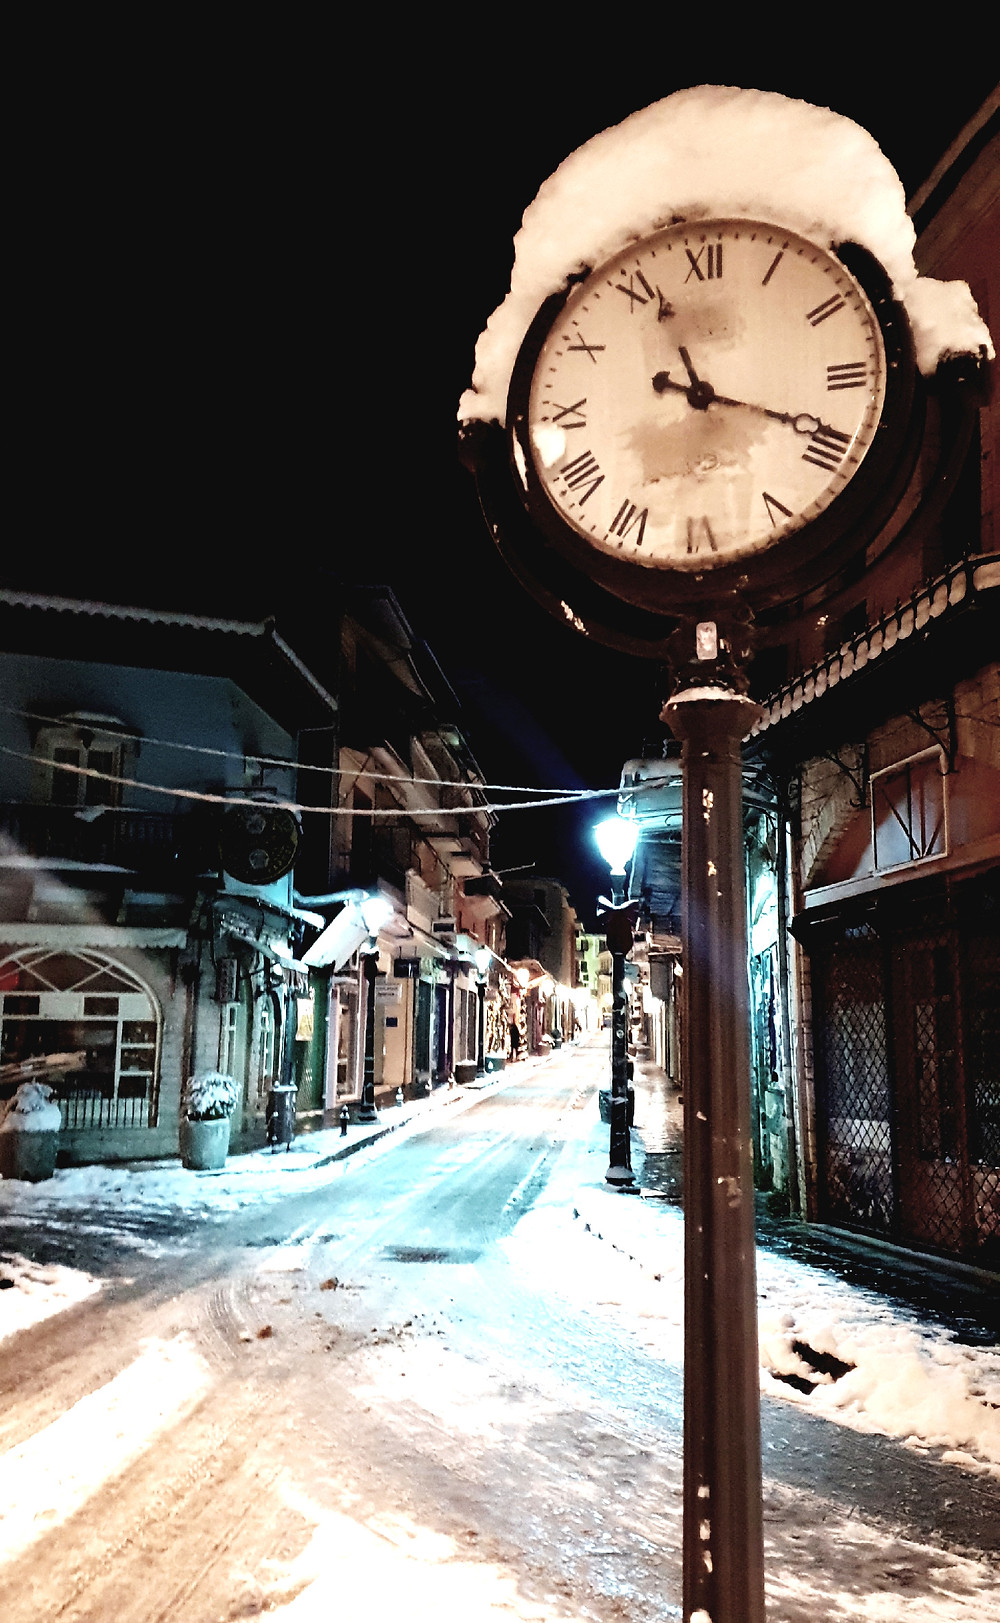 Time stopped in the cold snowy city - Photo by Mary Samou